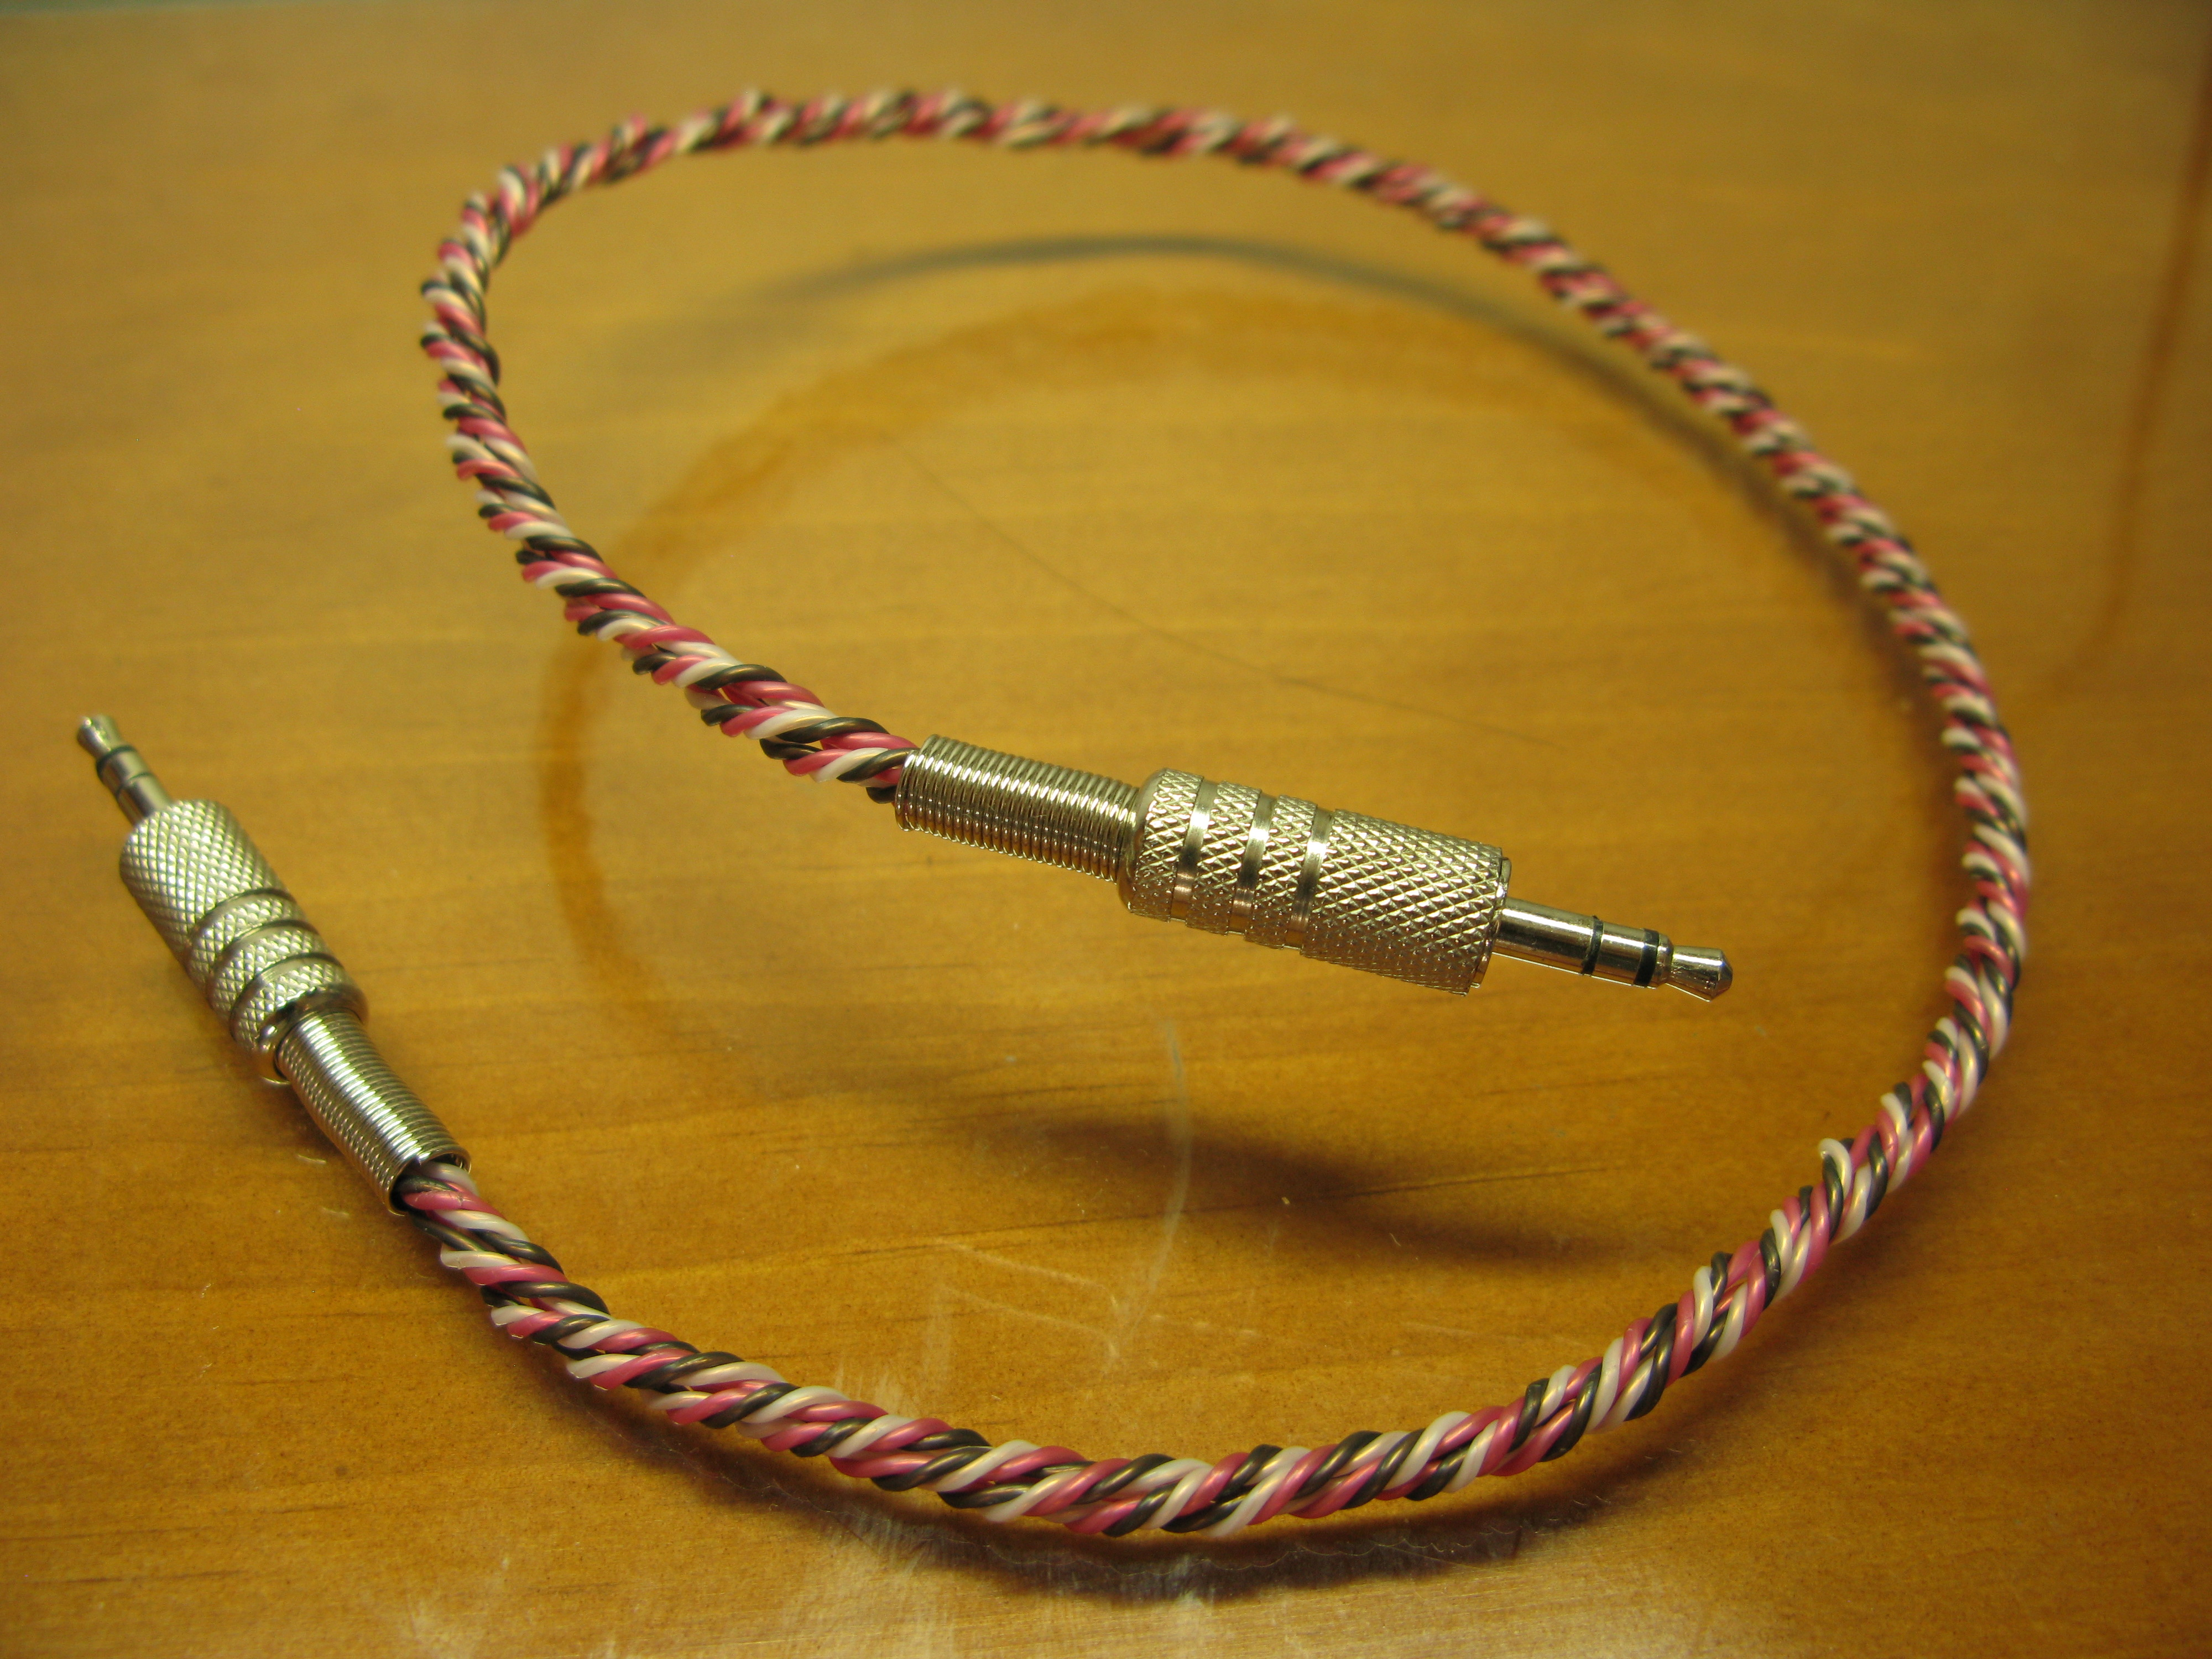 DIY Twisted Audio Cable (Made From Telephone Wires)